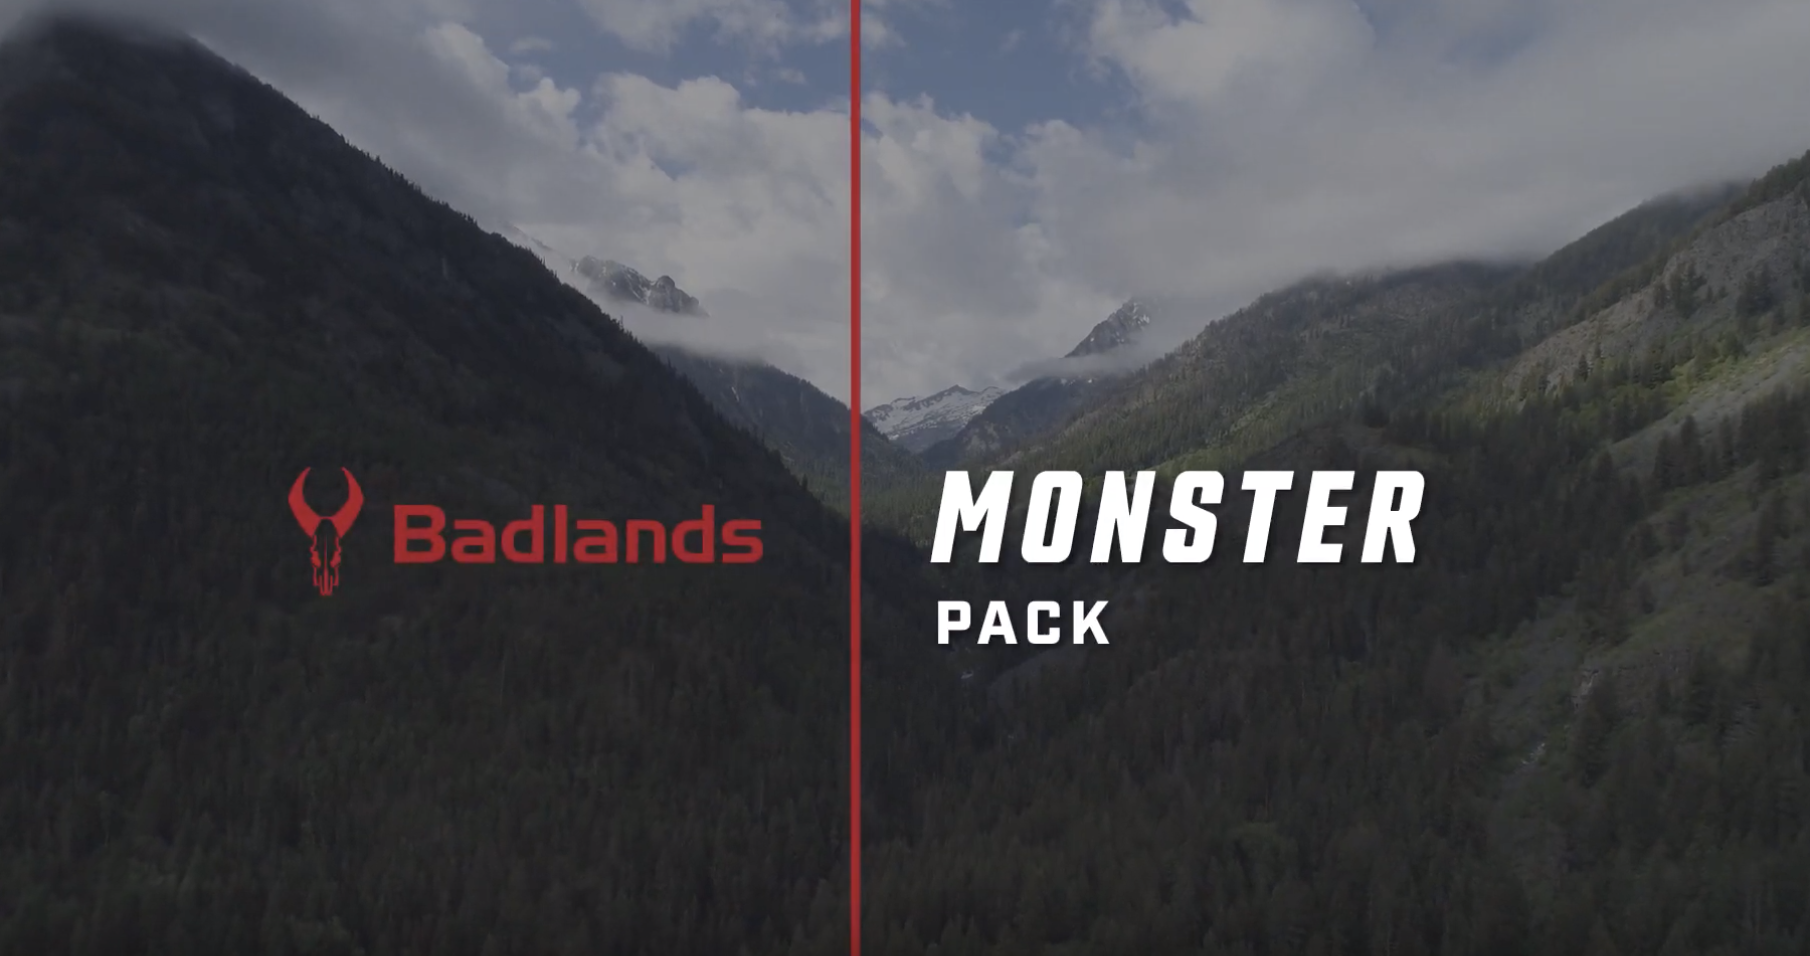 Learn more about the Monster Pack